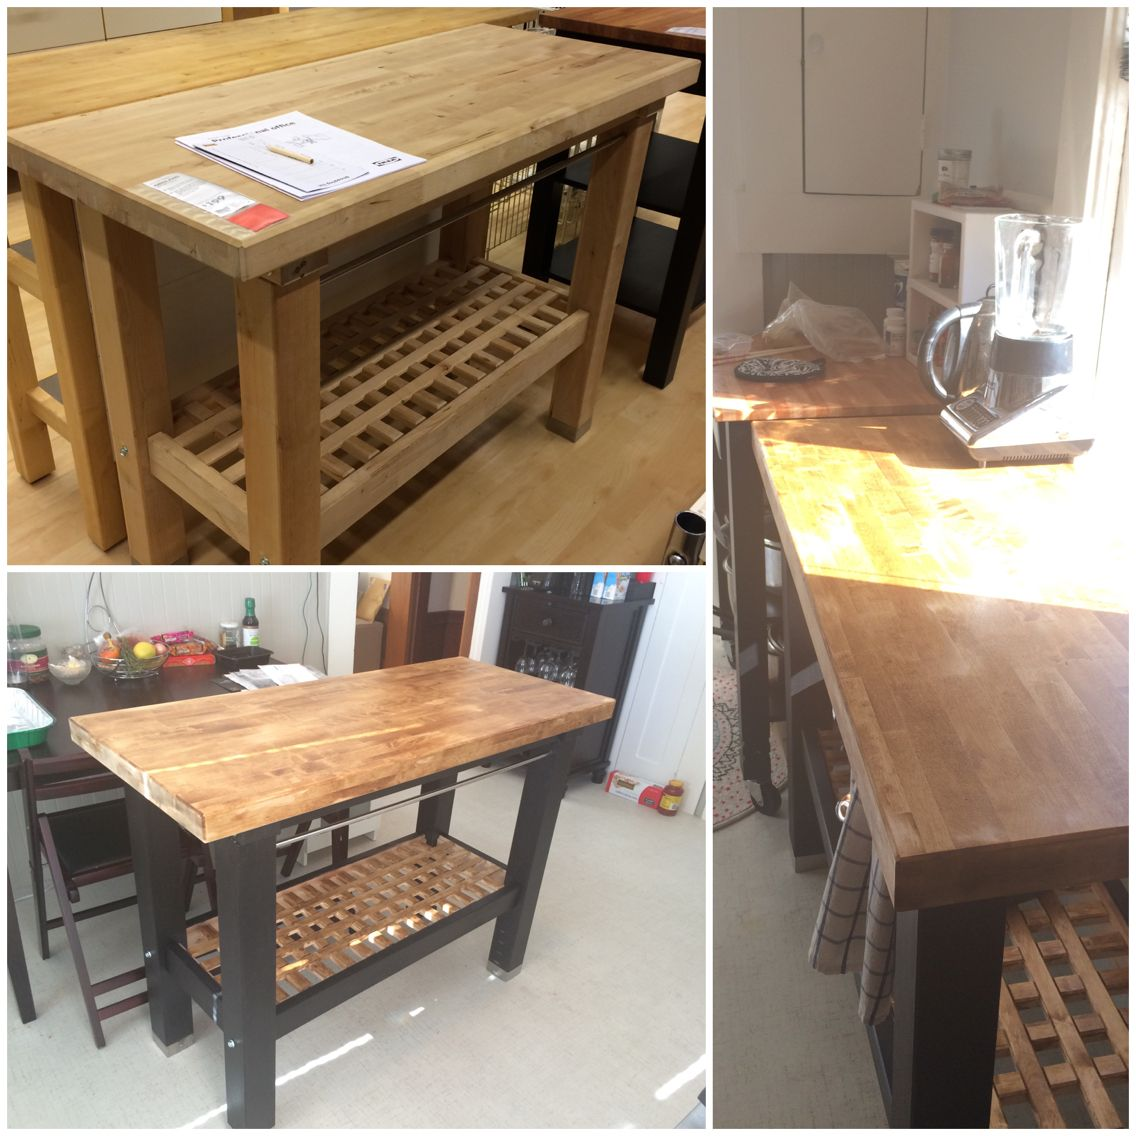 Groland kitchen island - before and after stain/paint. Idea ...